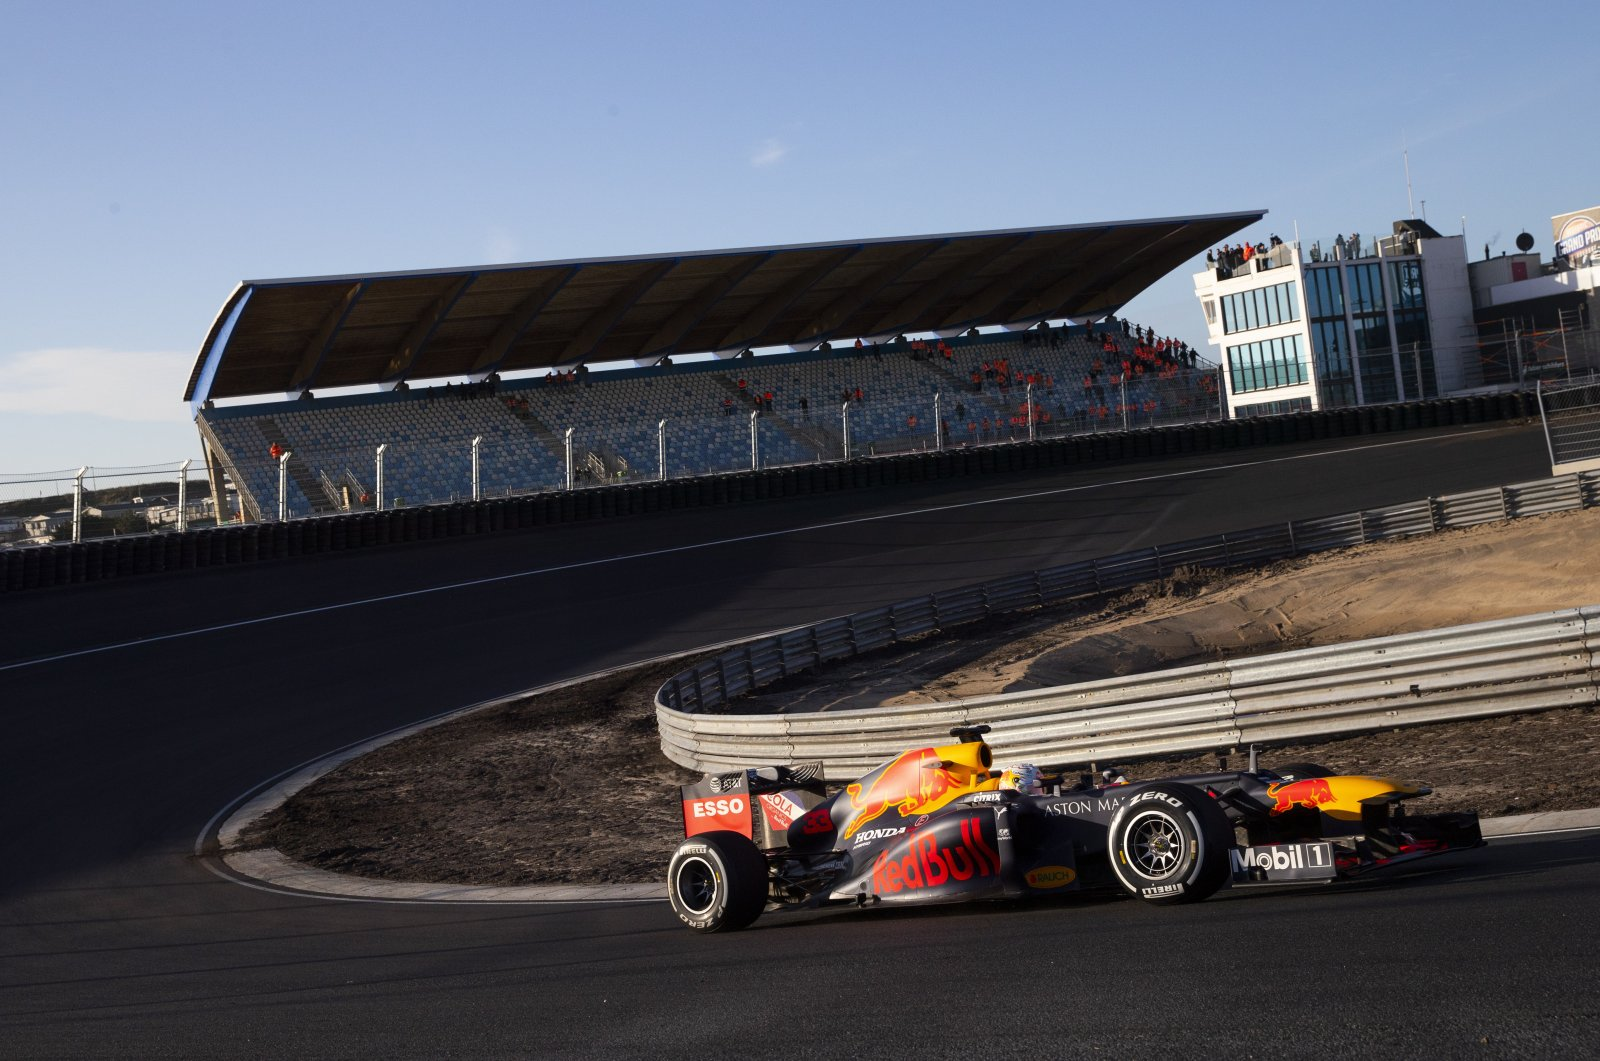 In this Wednesday, March 4, 2020, file image, F1 driver Max Verstappen of The Netherlands drives his car through one of the two banked corners during a test and official presentation of the renovated F1 track in the beachside resort of Zandvoort, western Netherlands. (AP Photo)